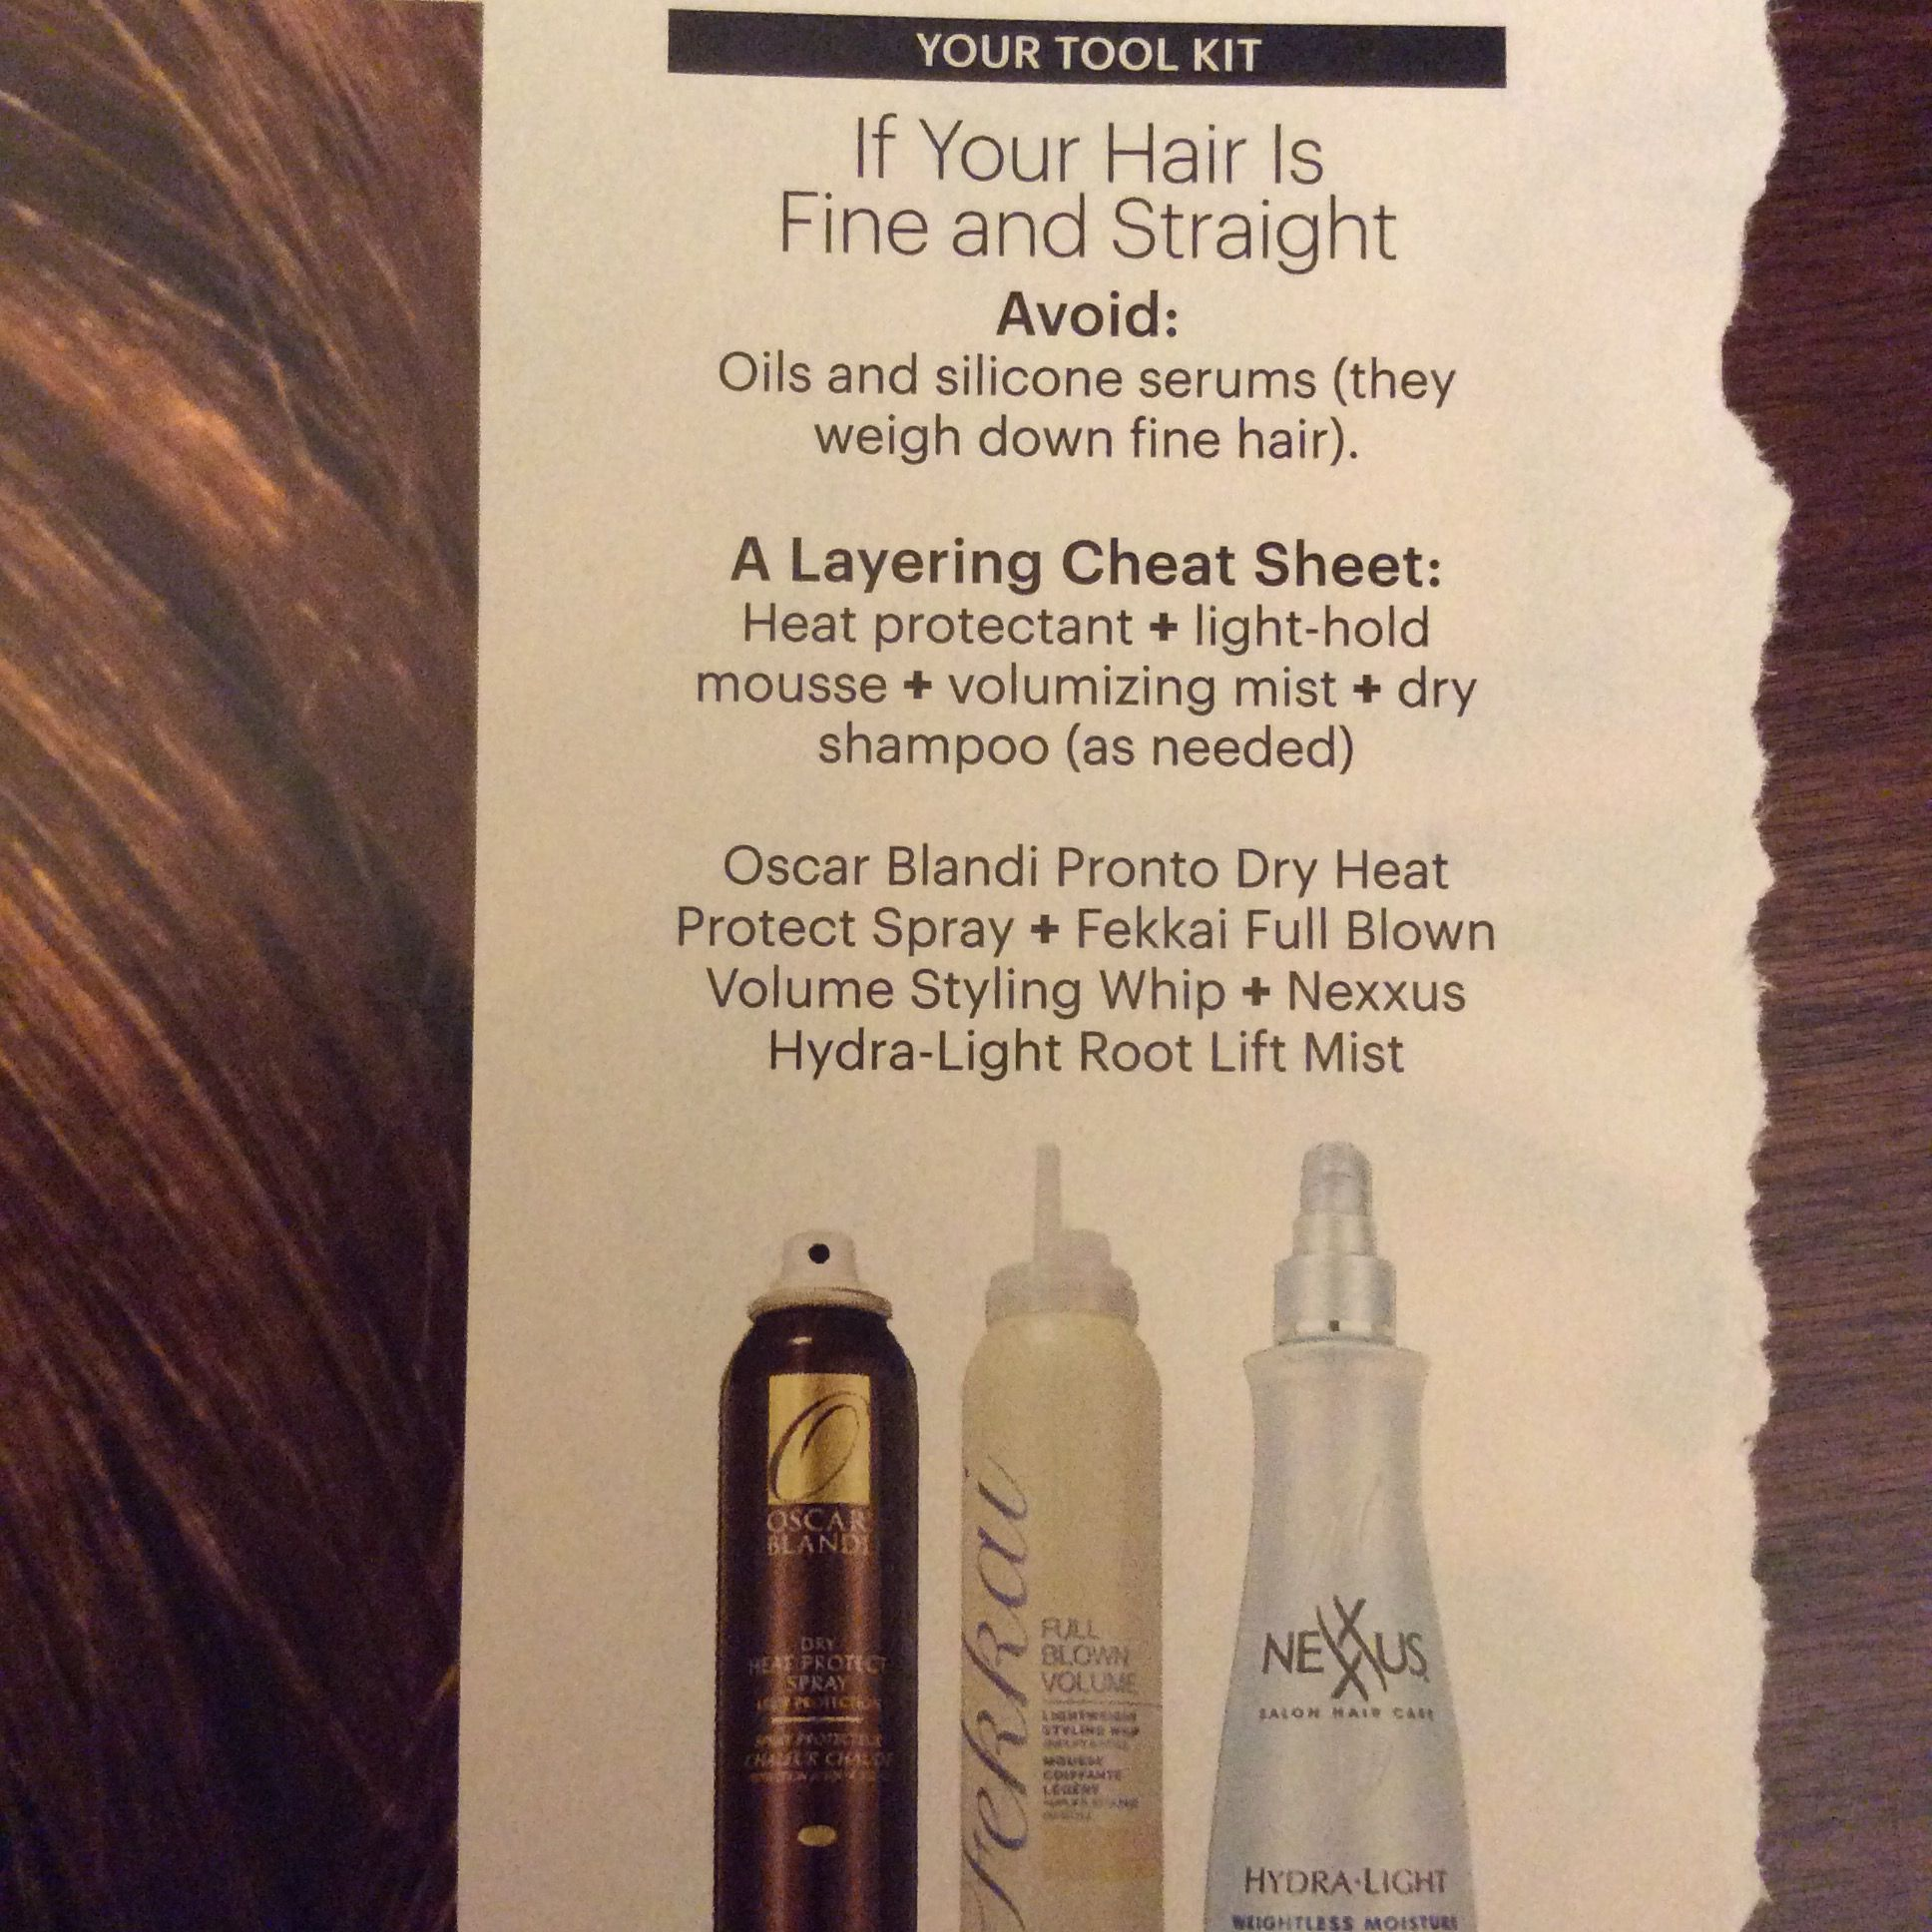 Fine hair  Avoid oil and silicone serum  Layer cheat sheet